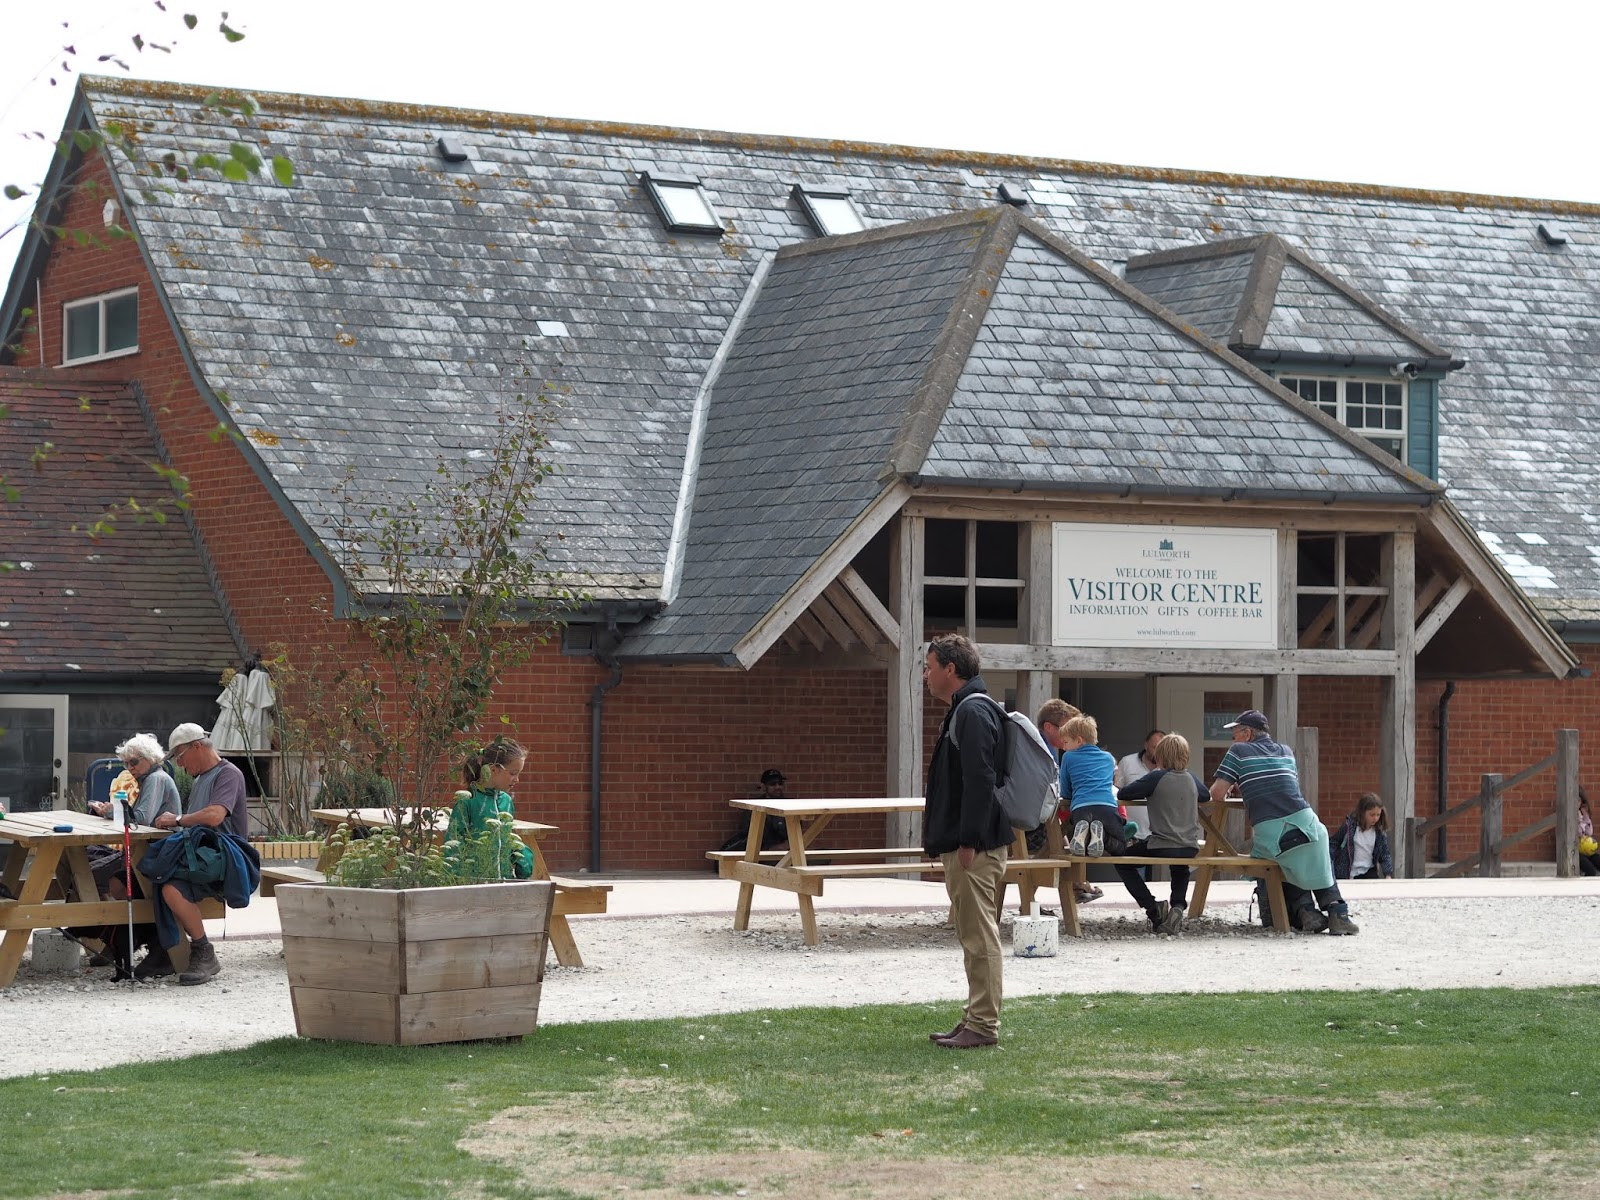 Lulworth Cove \ visitors information centre \ cafe \ shops